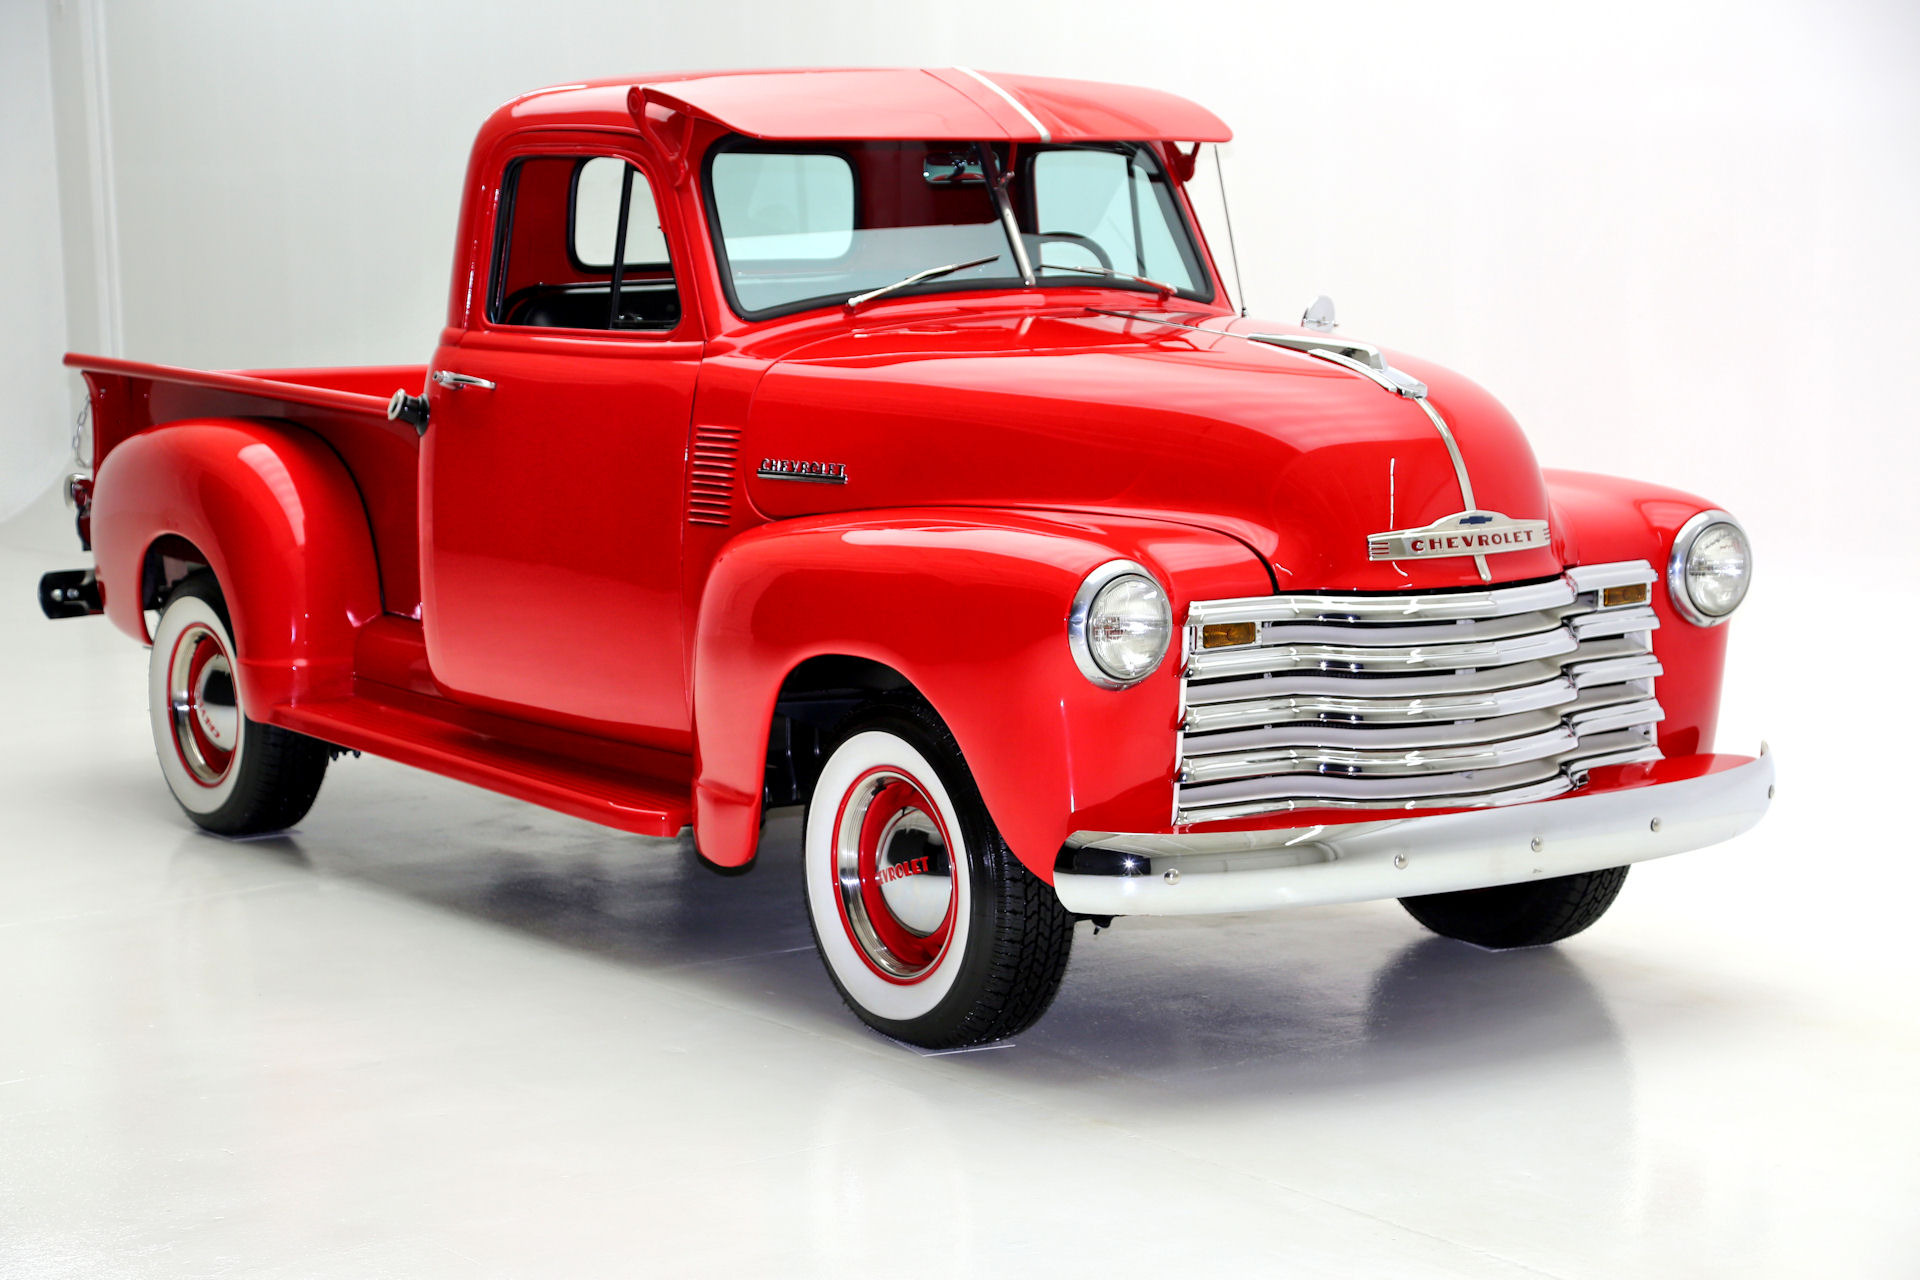 For Sale Used 1951 Chevrolet 3100 Frame Off, Power brakes | American Dream Machines Des Moines IA 50309